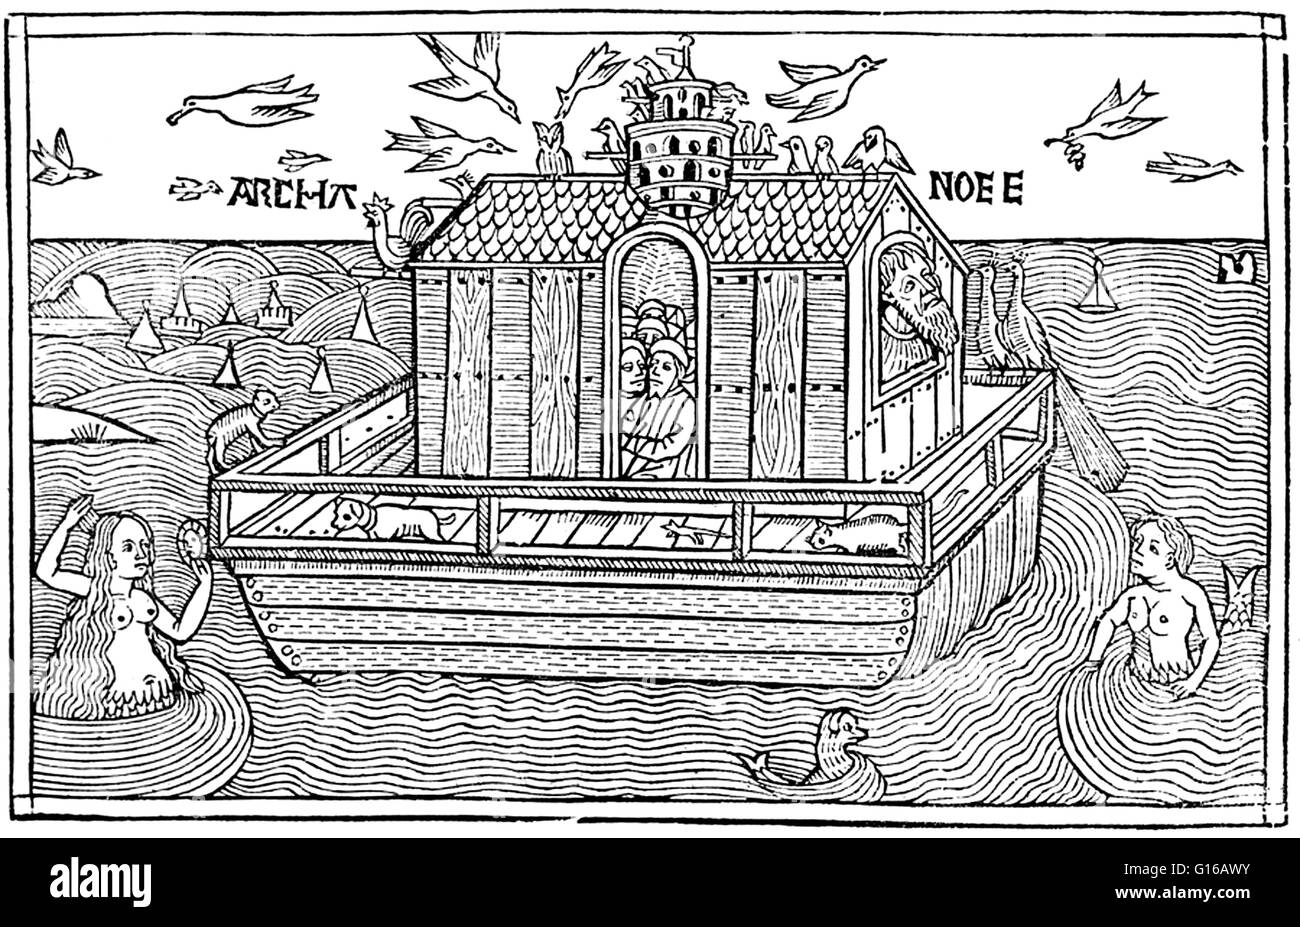 Woodcut of Noah's Ark with merfolk from the Nuremberg Chronicle, 1493. Noah was the tenth and last of the antediluvian - Stock Image